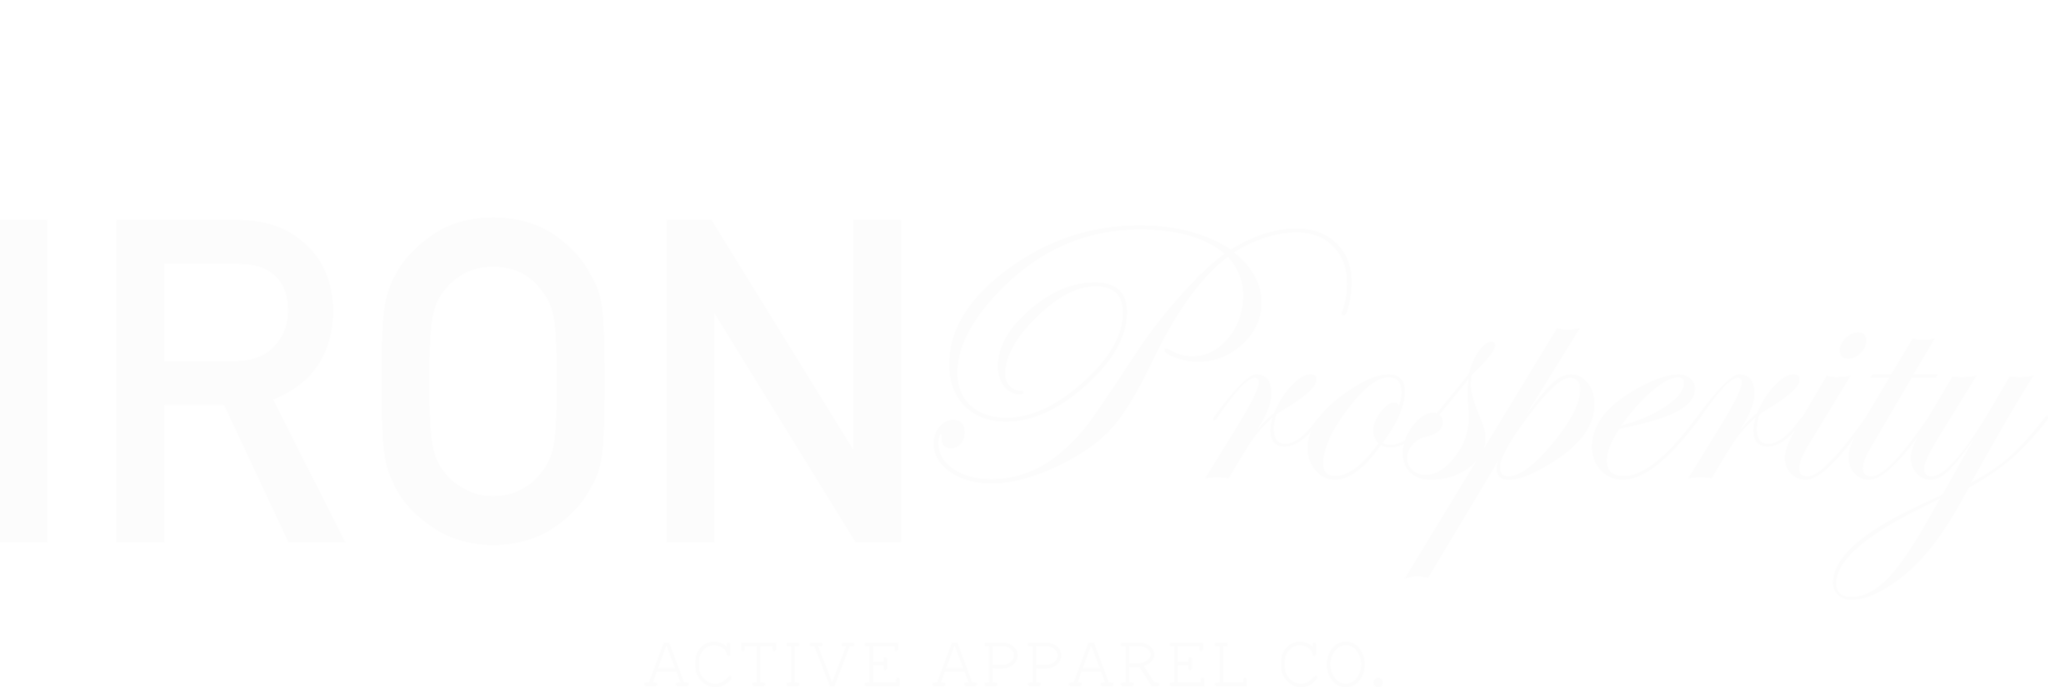 Iron Prosperity Active Apparel Co.